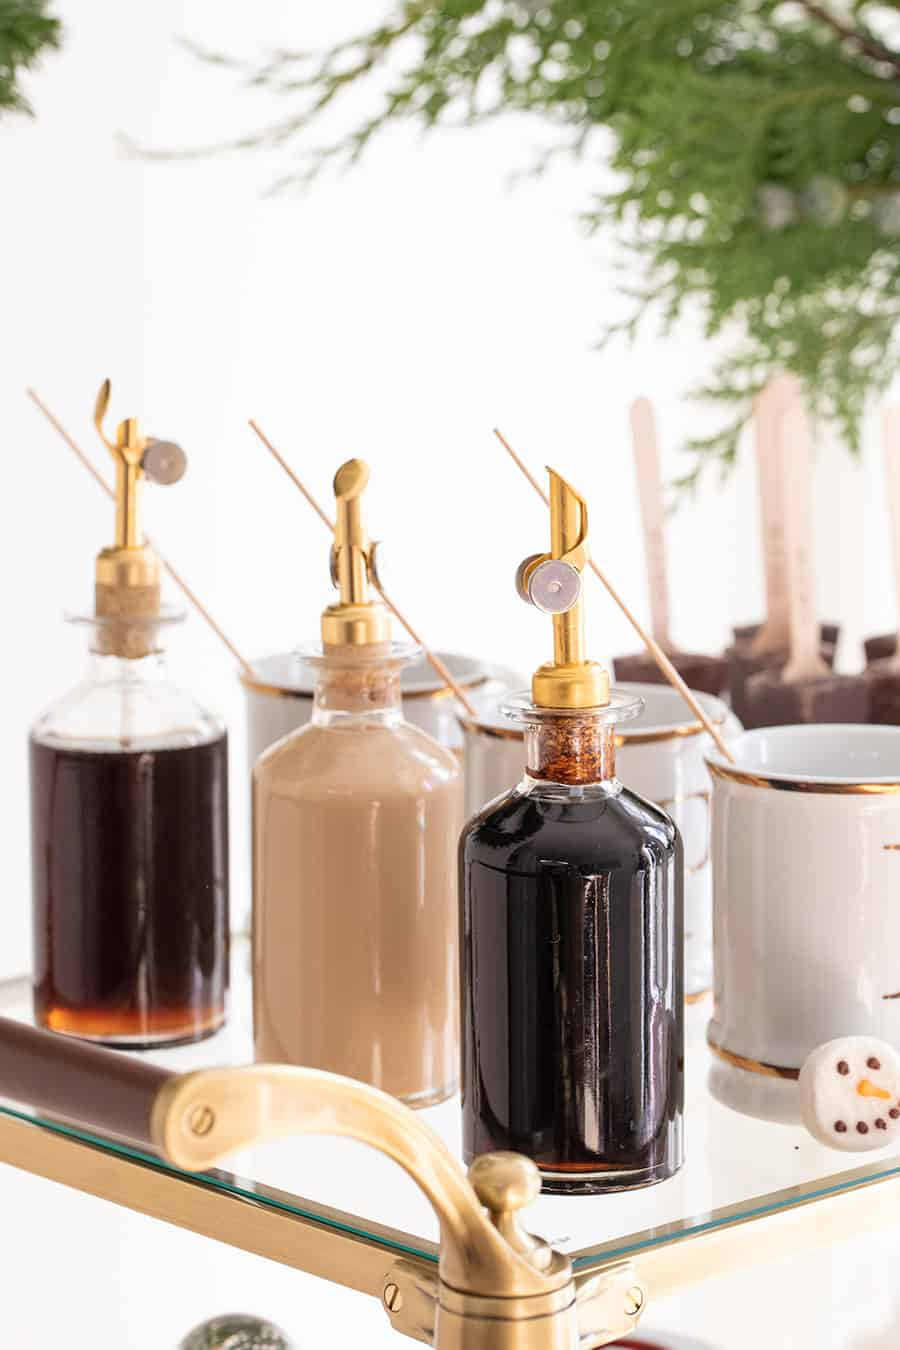 Syrups in glass jars with gold spout